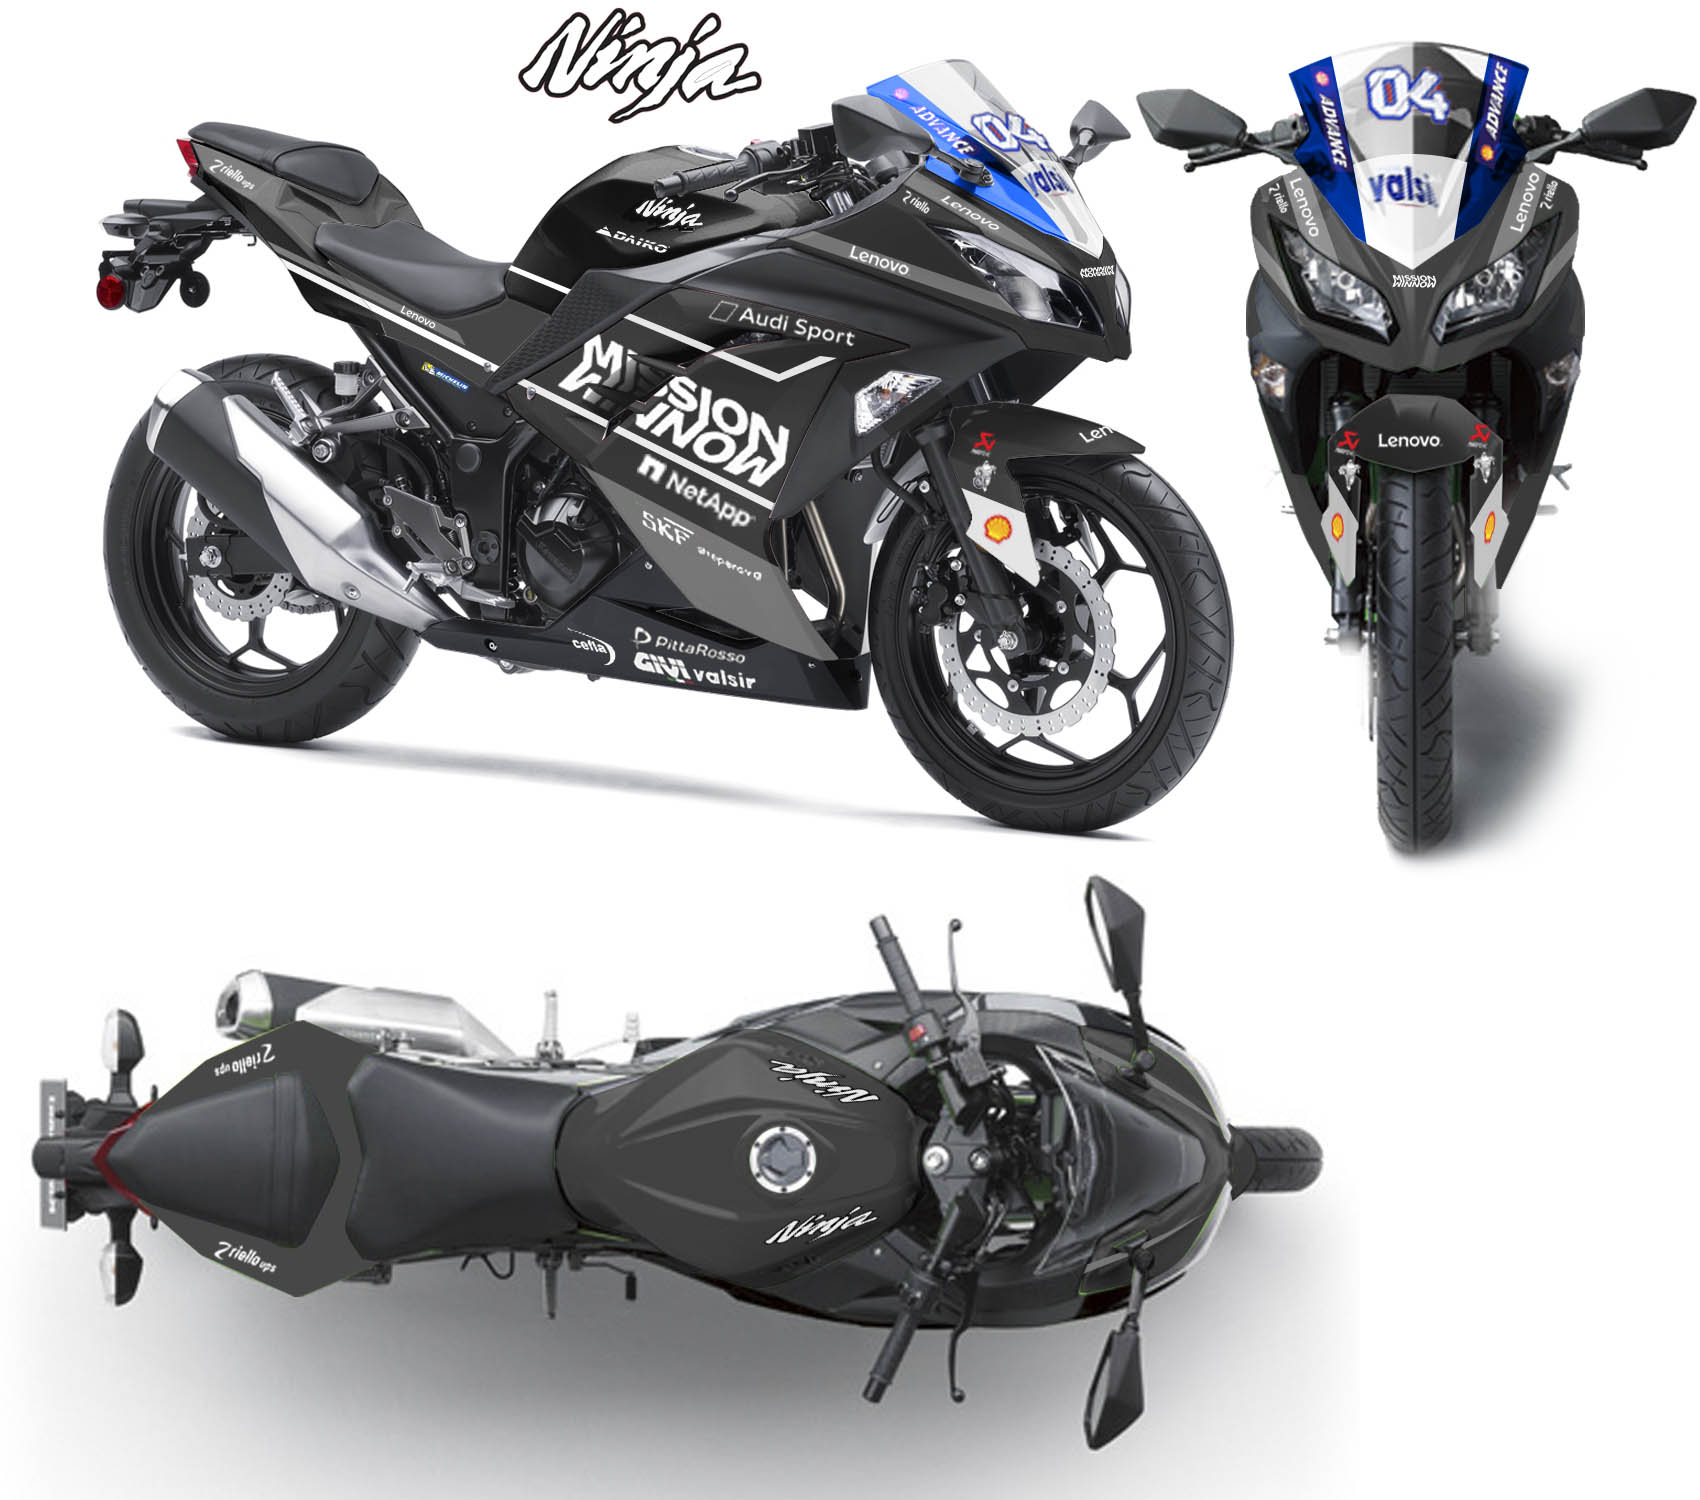 Modifikasi striping Kawasaki Ninja 250R Fi Mission Winnow Black